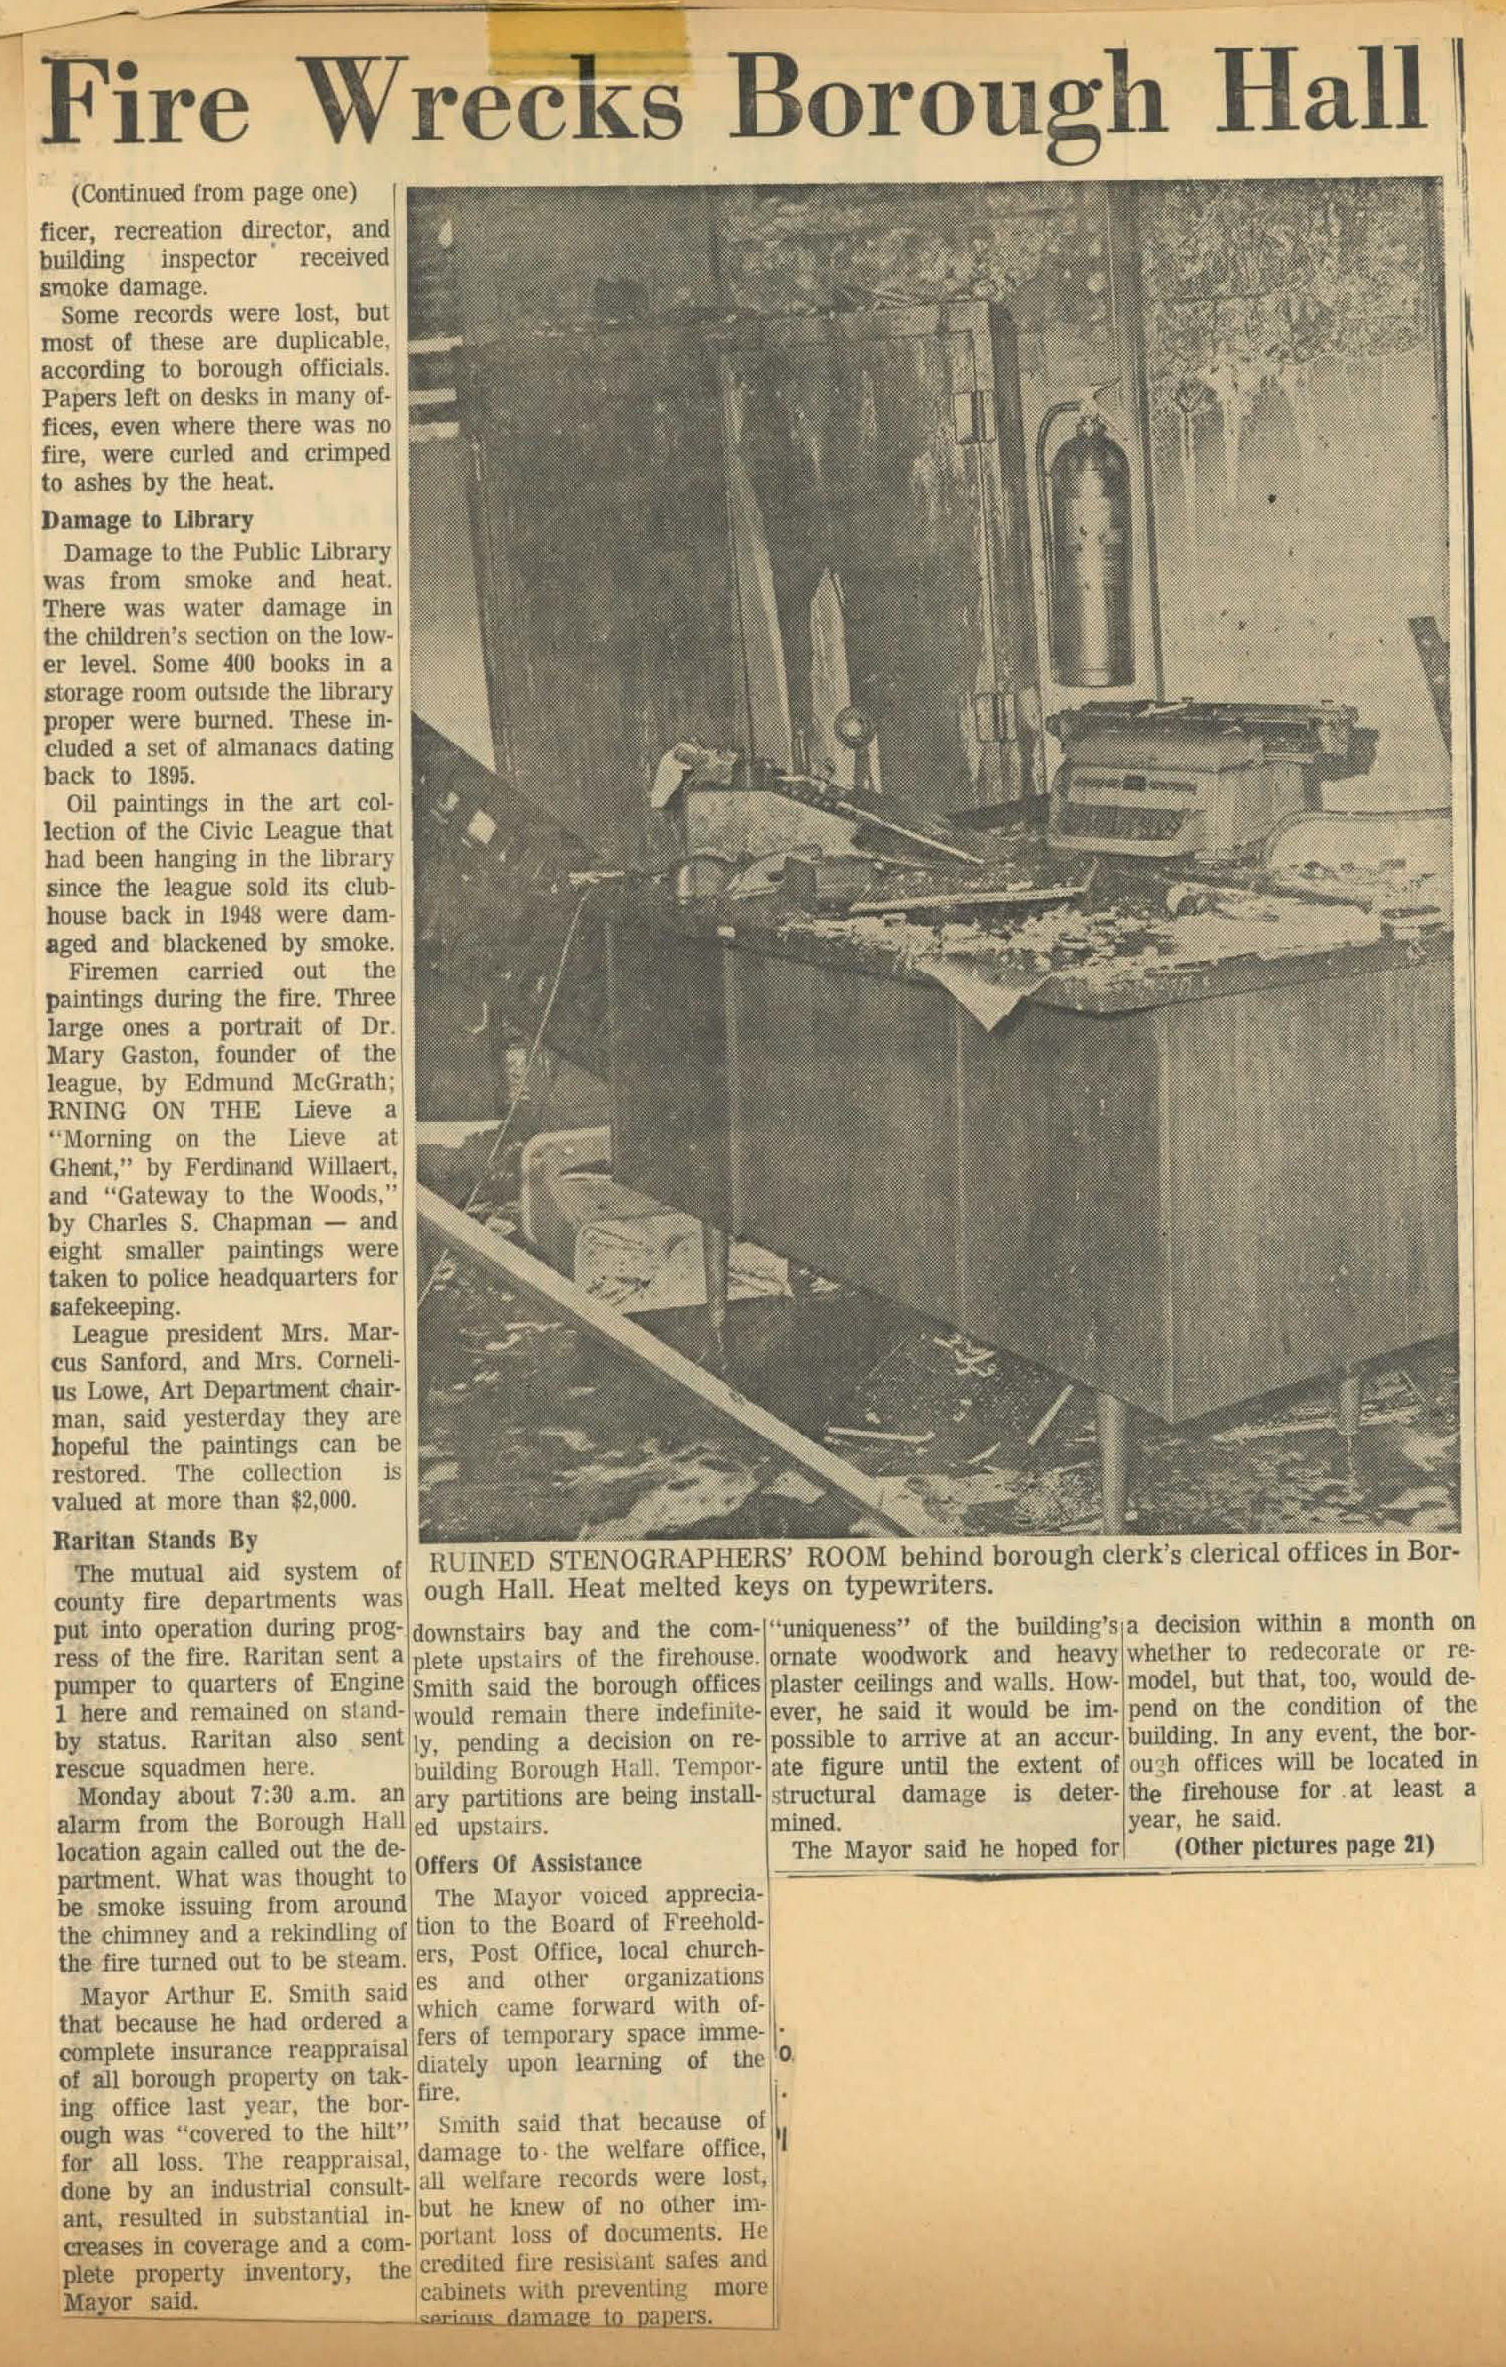 1967 Boro hall fire.article.7 cont_Page_1_Image_0001.jpg